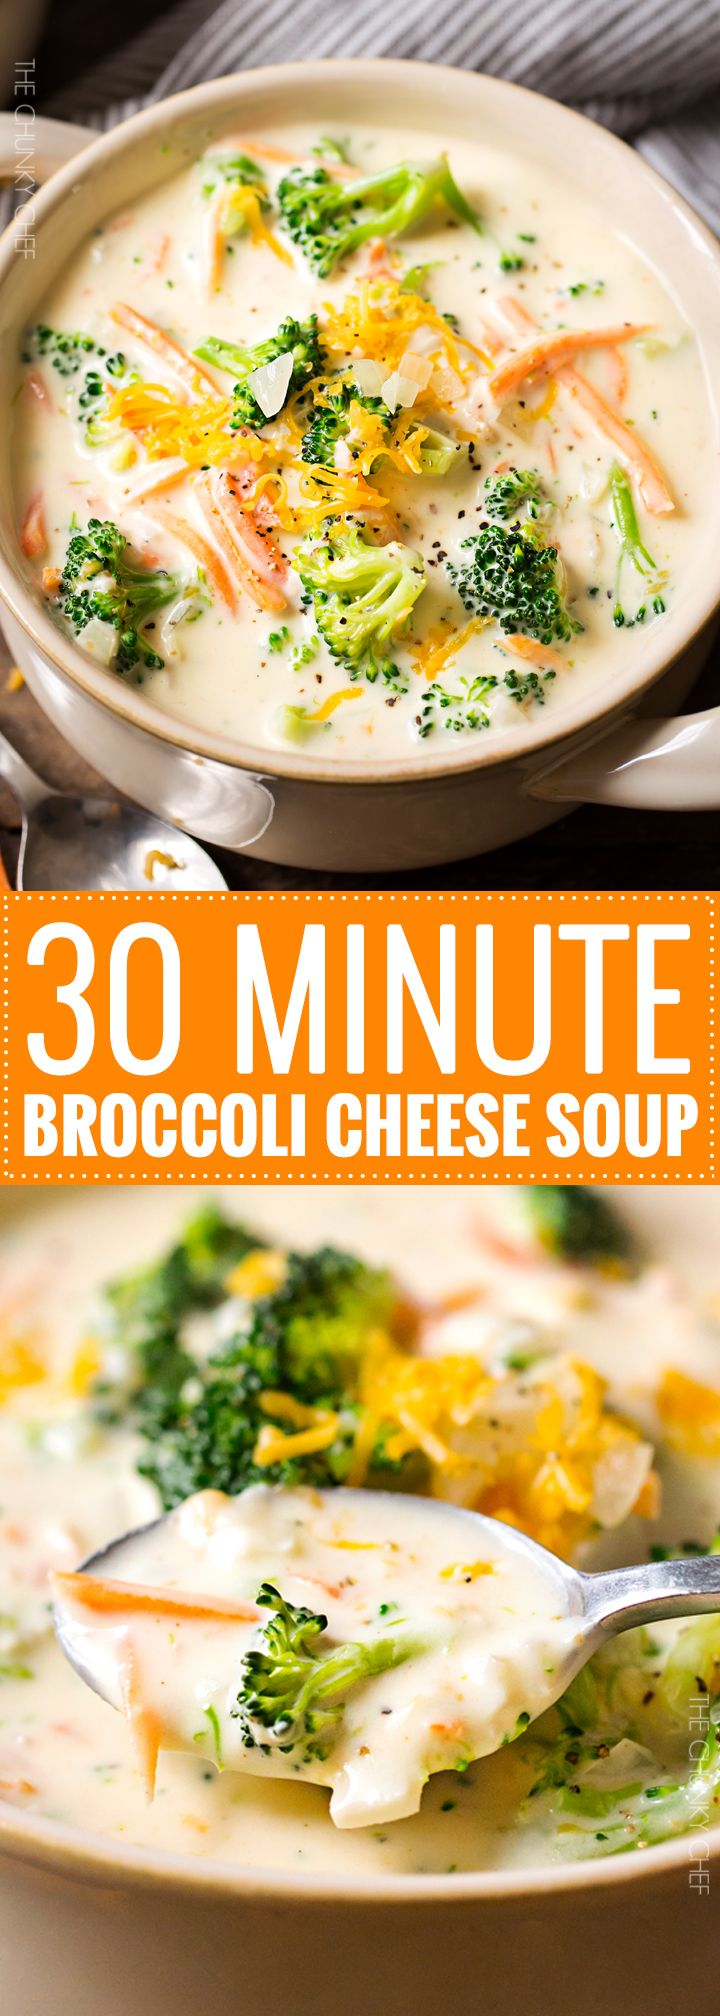 Copycat 30 Minute Broccoli Cheese Soup